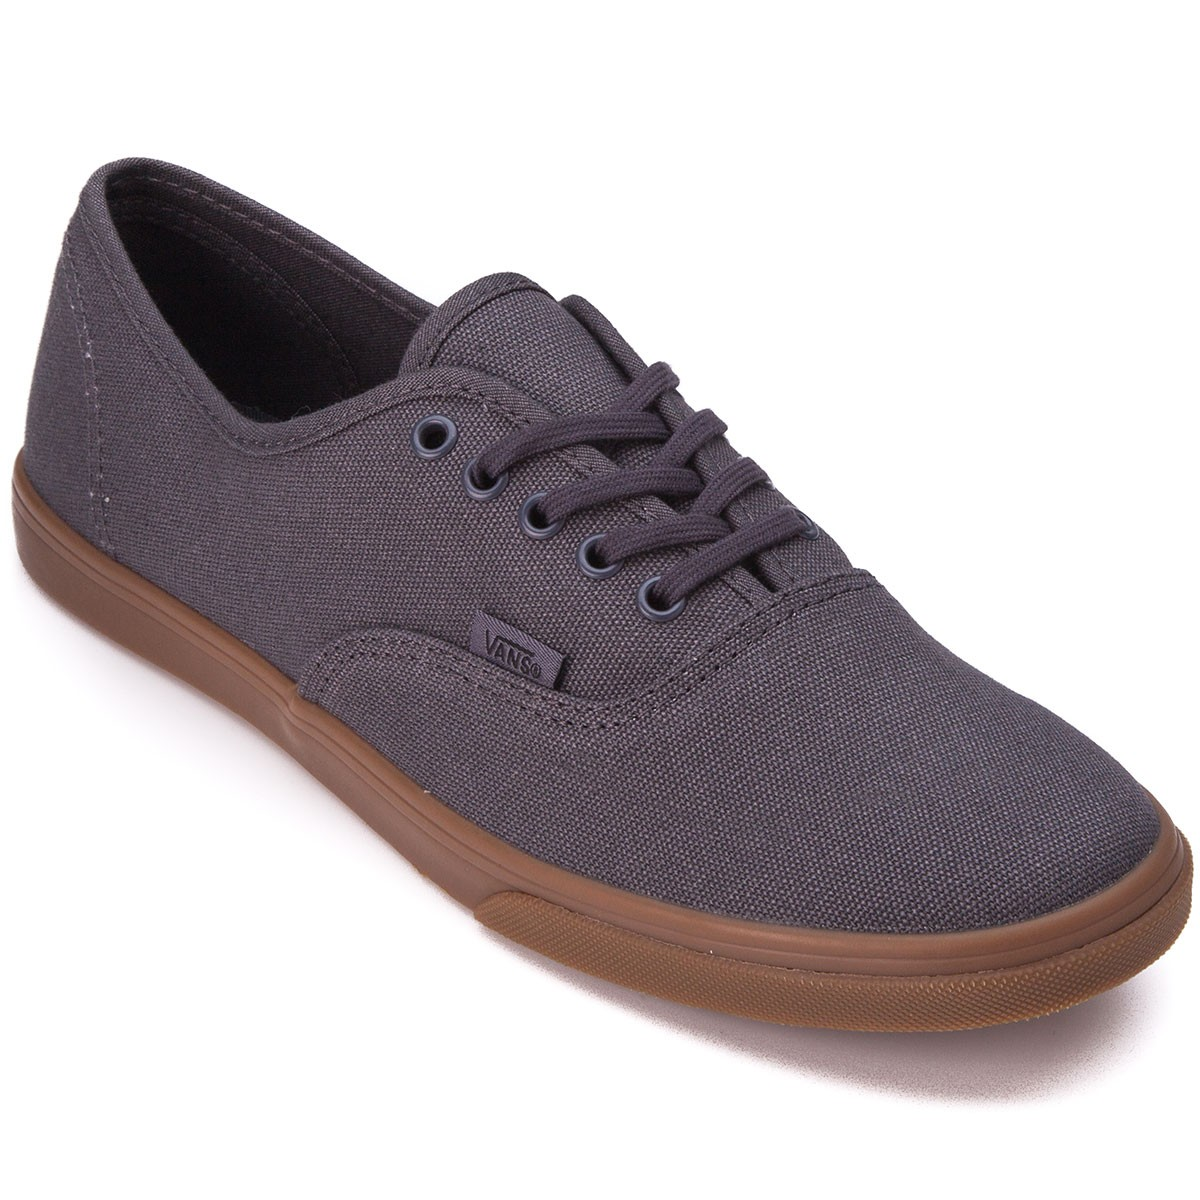 Vans Authentic Lo Pro Womens Shoes - Gumsole/Asphalt - 5.0